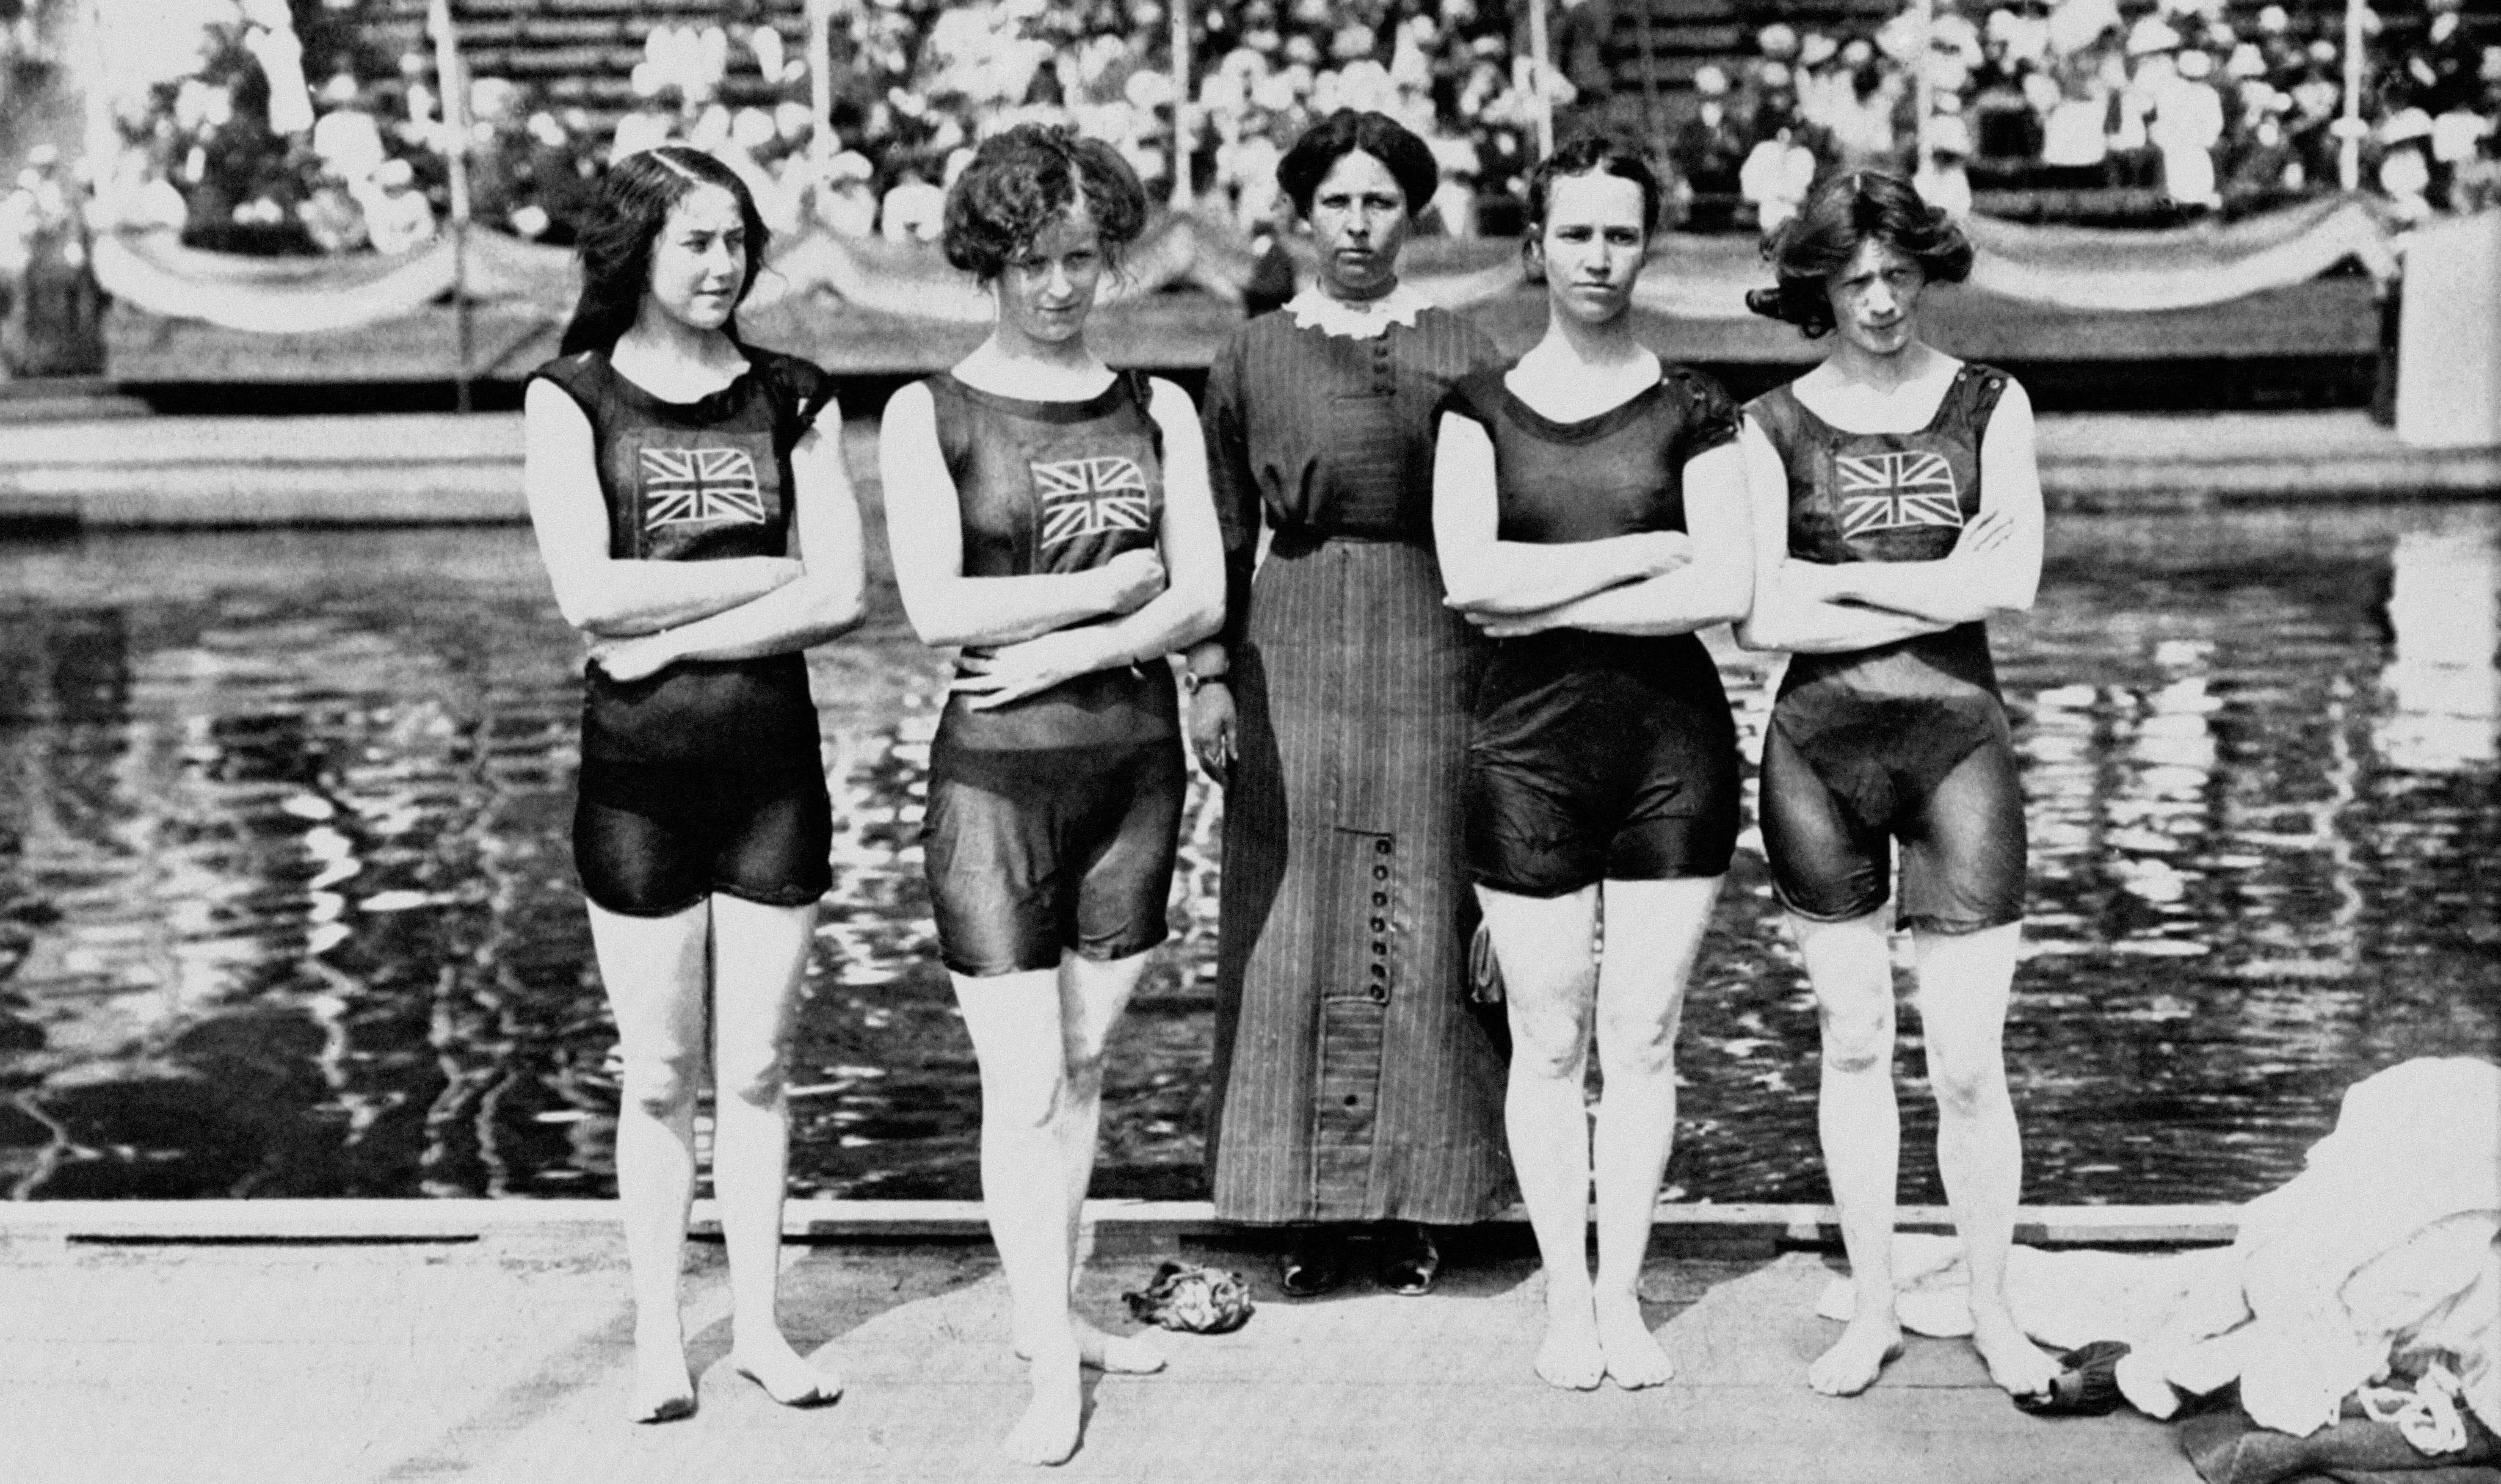 Stockholm, 1912: The Swedish Olympic games in 1912 were the first to feature women's diving, women's swimming, and both the decathlon and the new pentathlon. Pictured is Great Britain's first female swimming team, who went on to win gold.